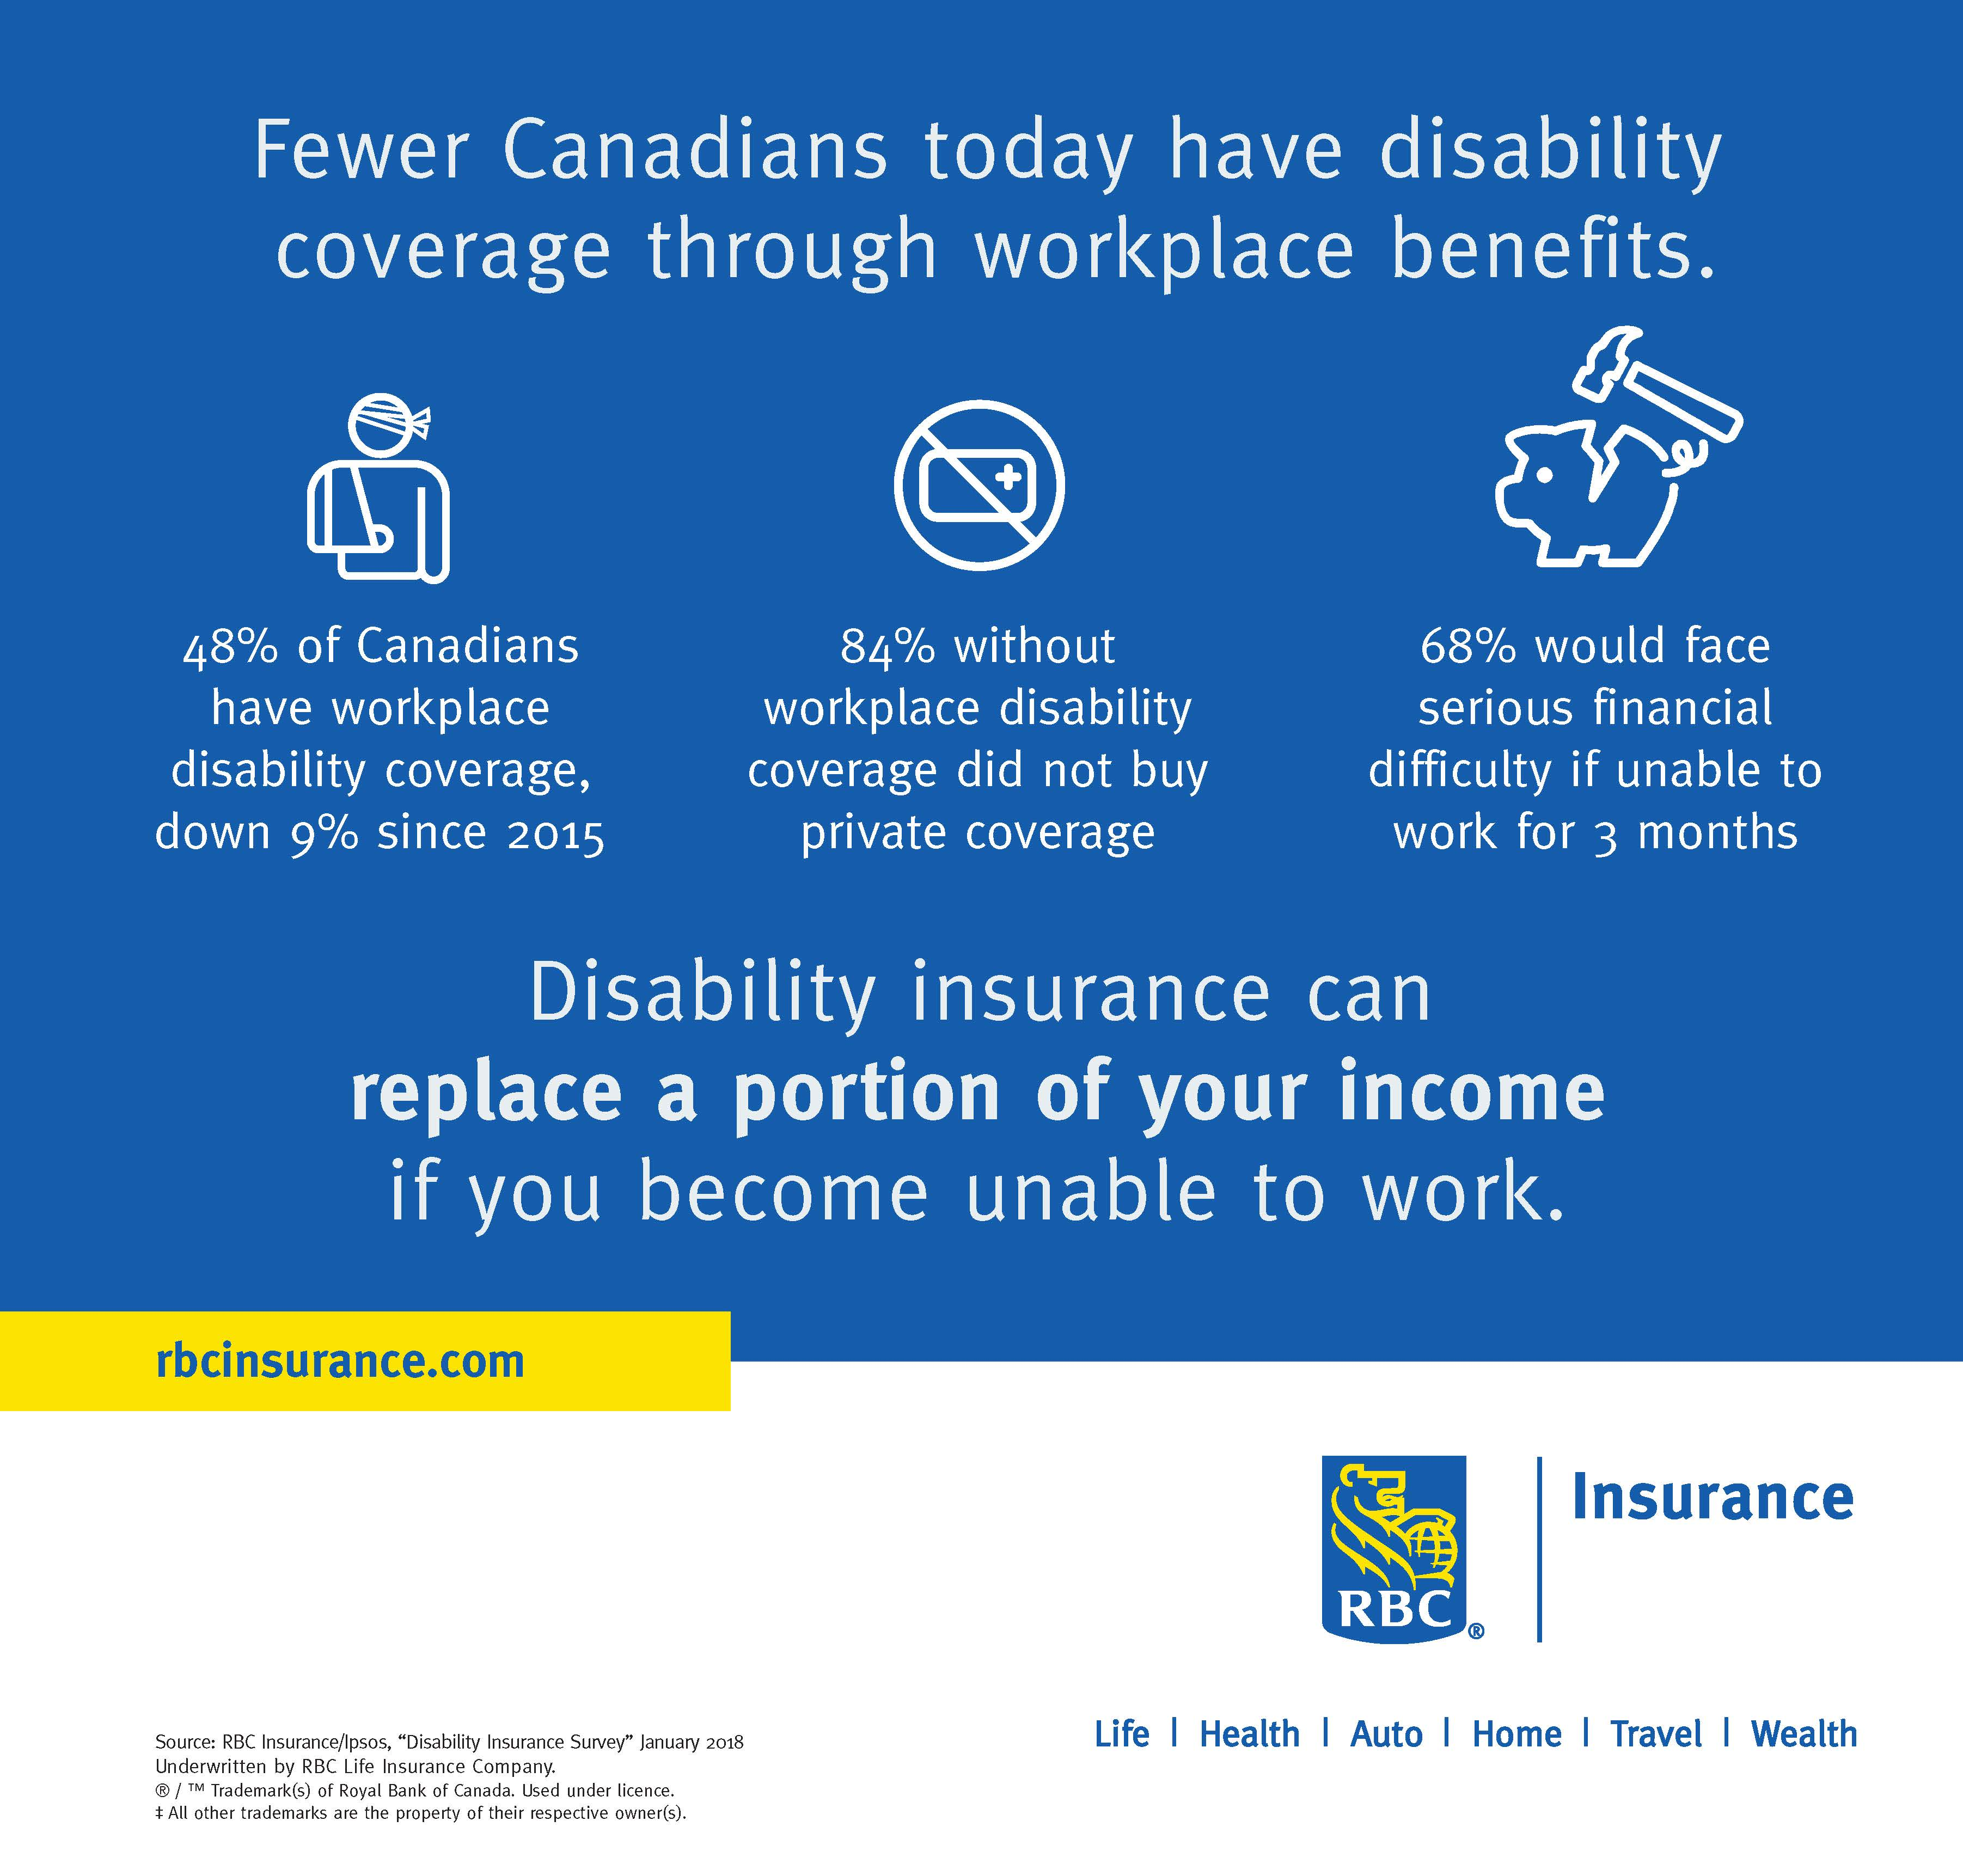 RBC Insurance:  Fewer Canadians today have disability coverage through workplace benefits